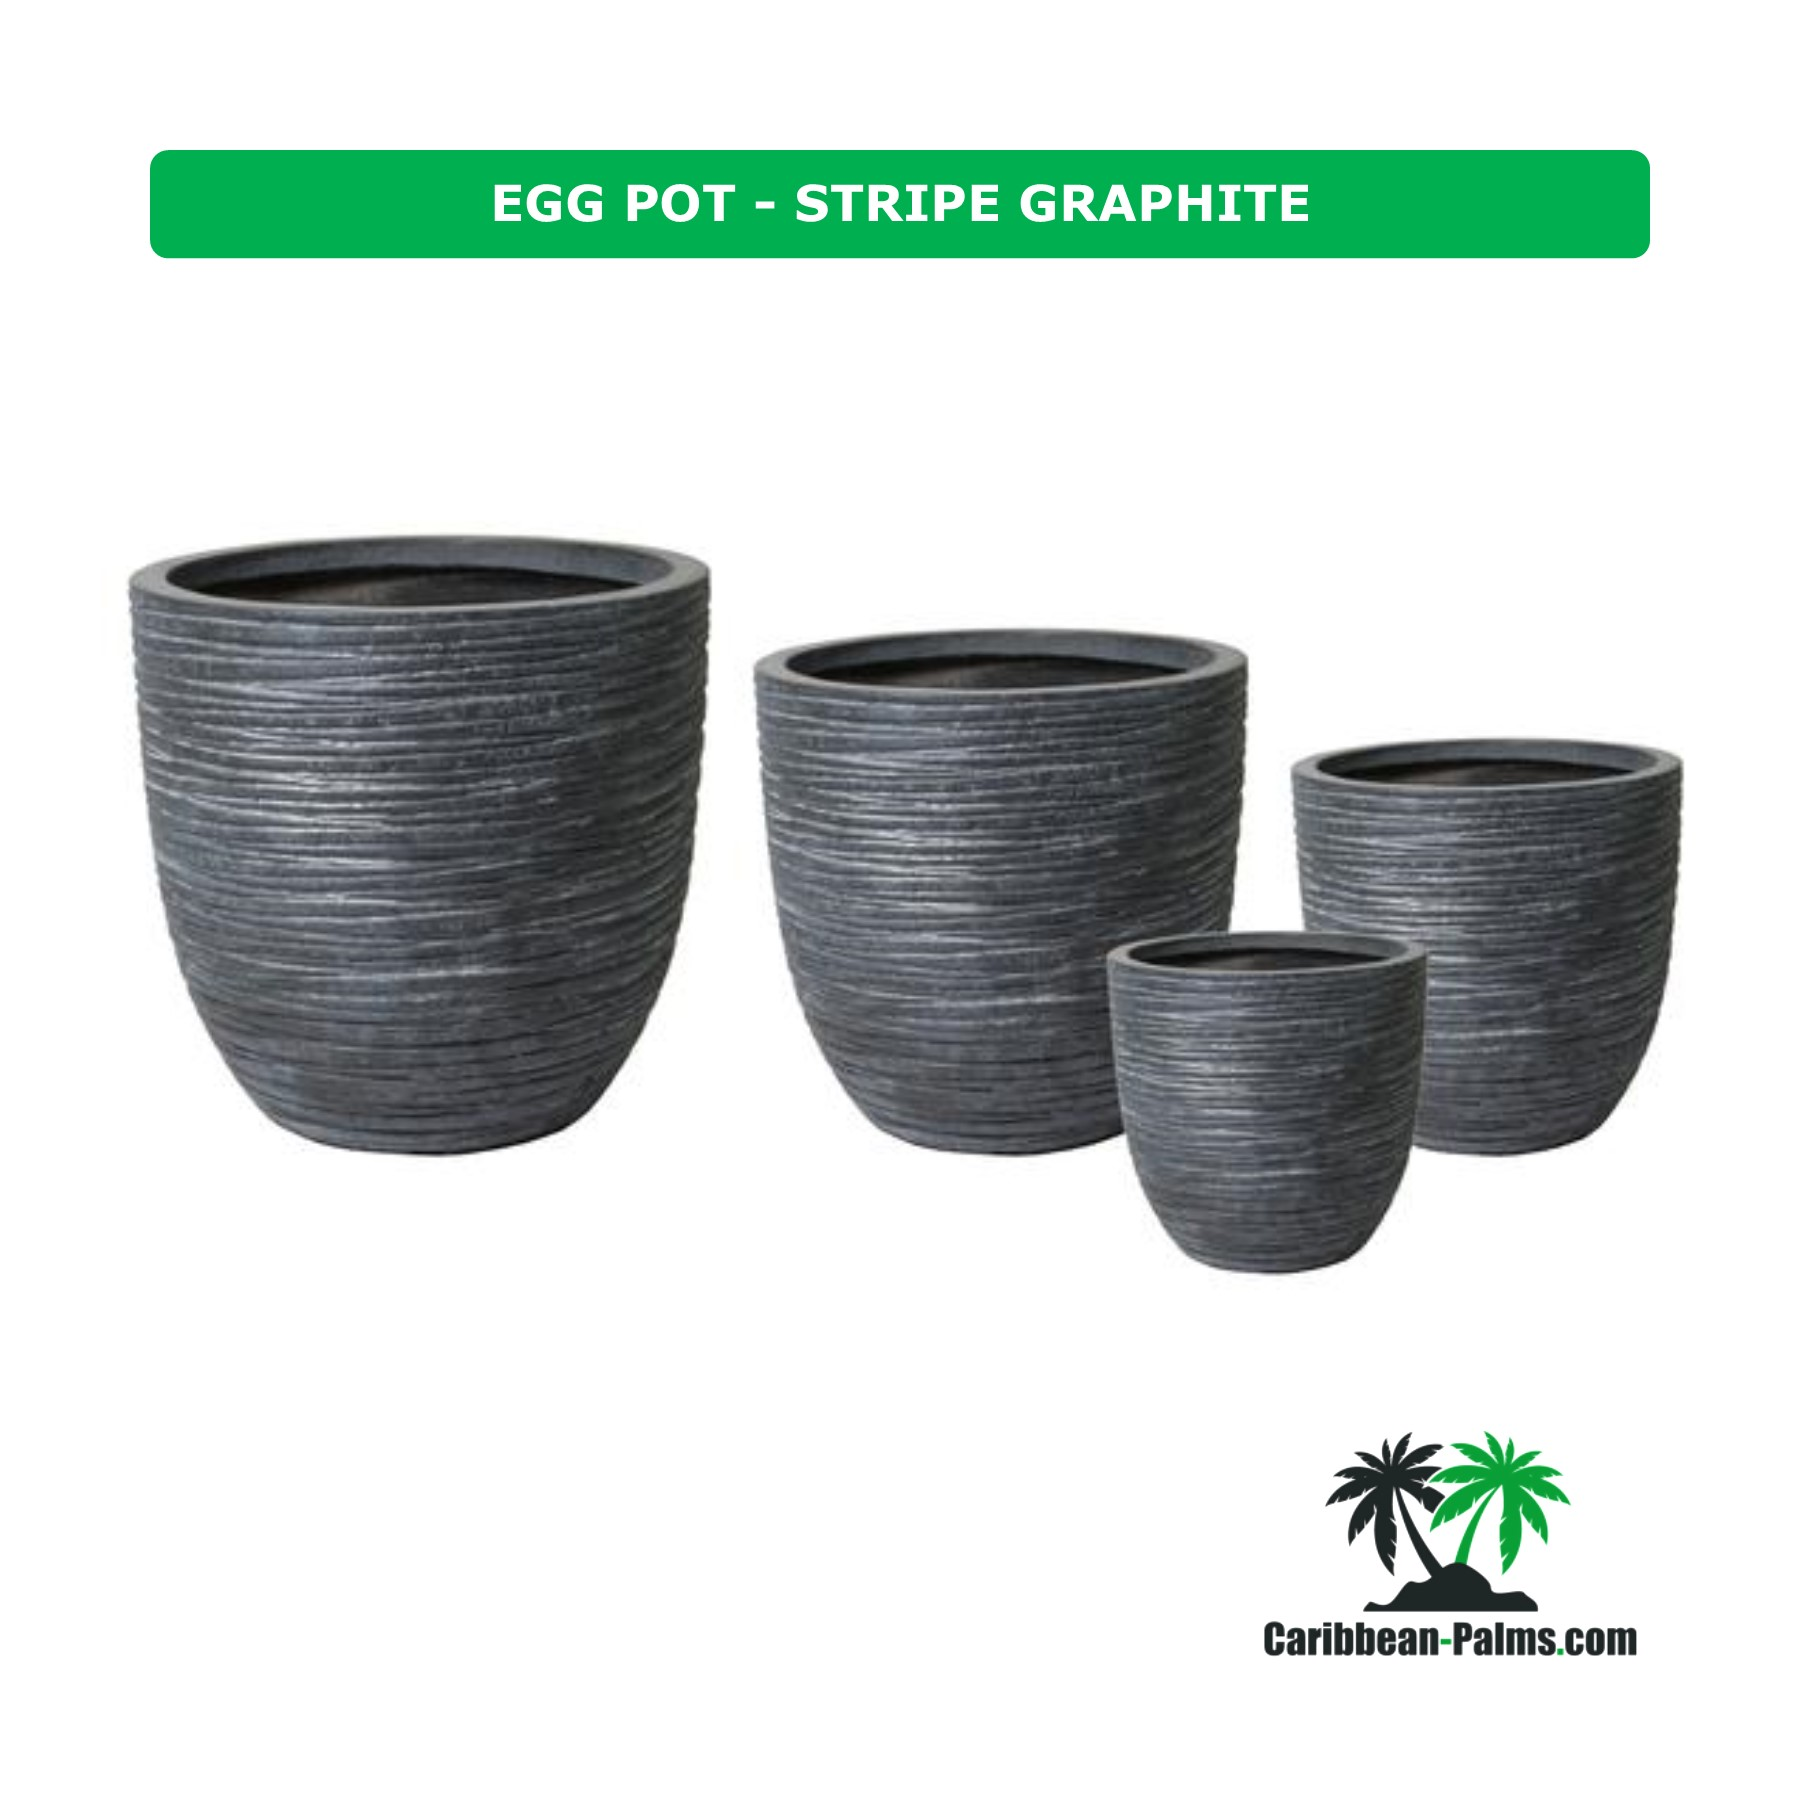 EGG POT STRIPE GRAPHITE